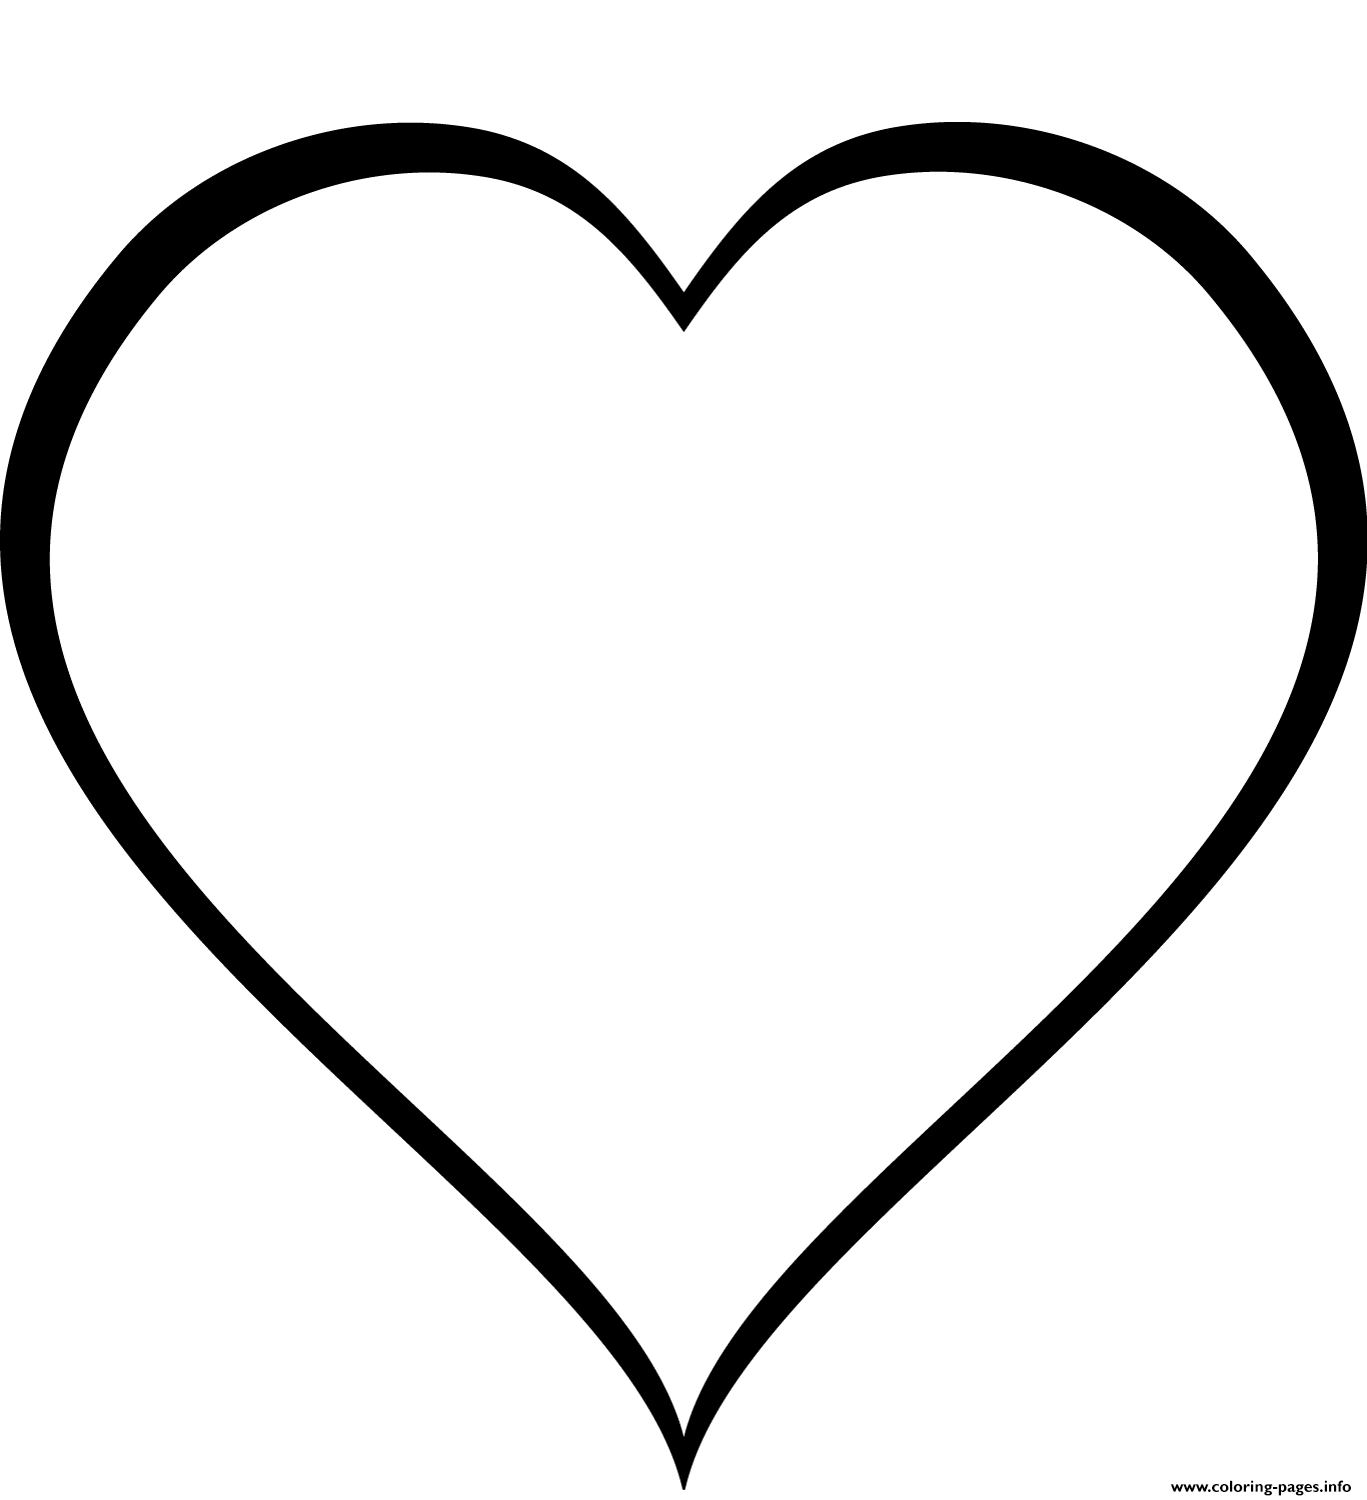 simple heart coloring pages simple heart coloring page free printable coloring pages heart simple coloring pages